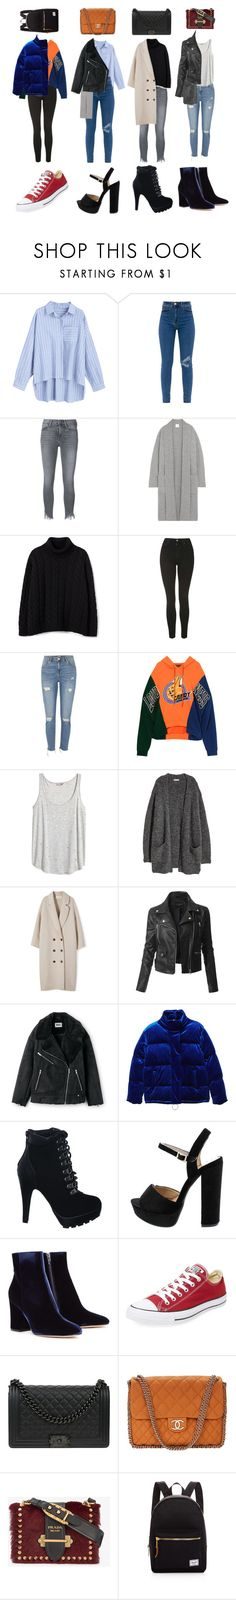 """""""Untitled #1739"""" by mayanderson ❤ liked on Polyvore featuring Frame, Madeleine Thompson, Topshop, River Island, H&M, LE3NO, MANGO, Gianvito Rossi, Converse and Chanel"""